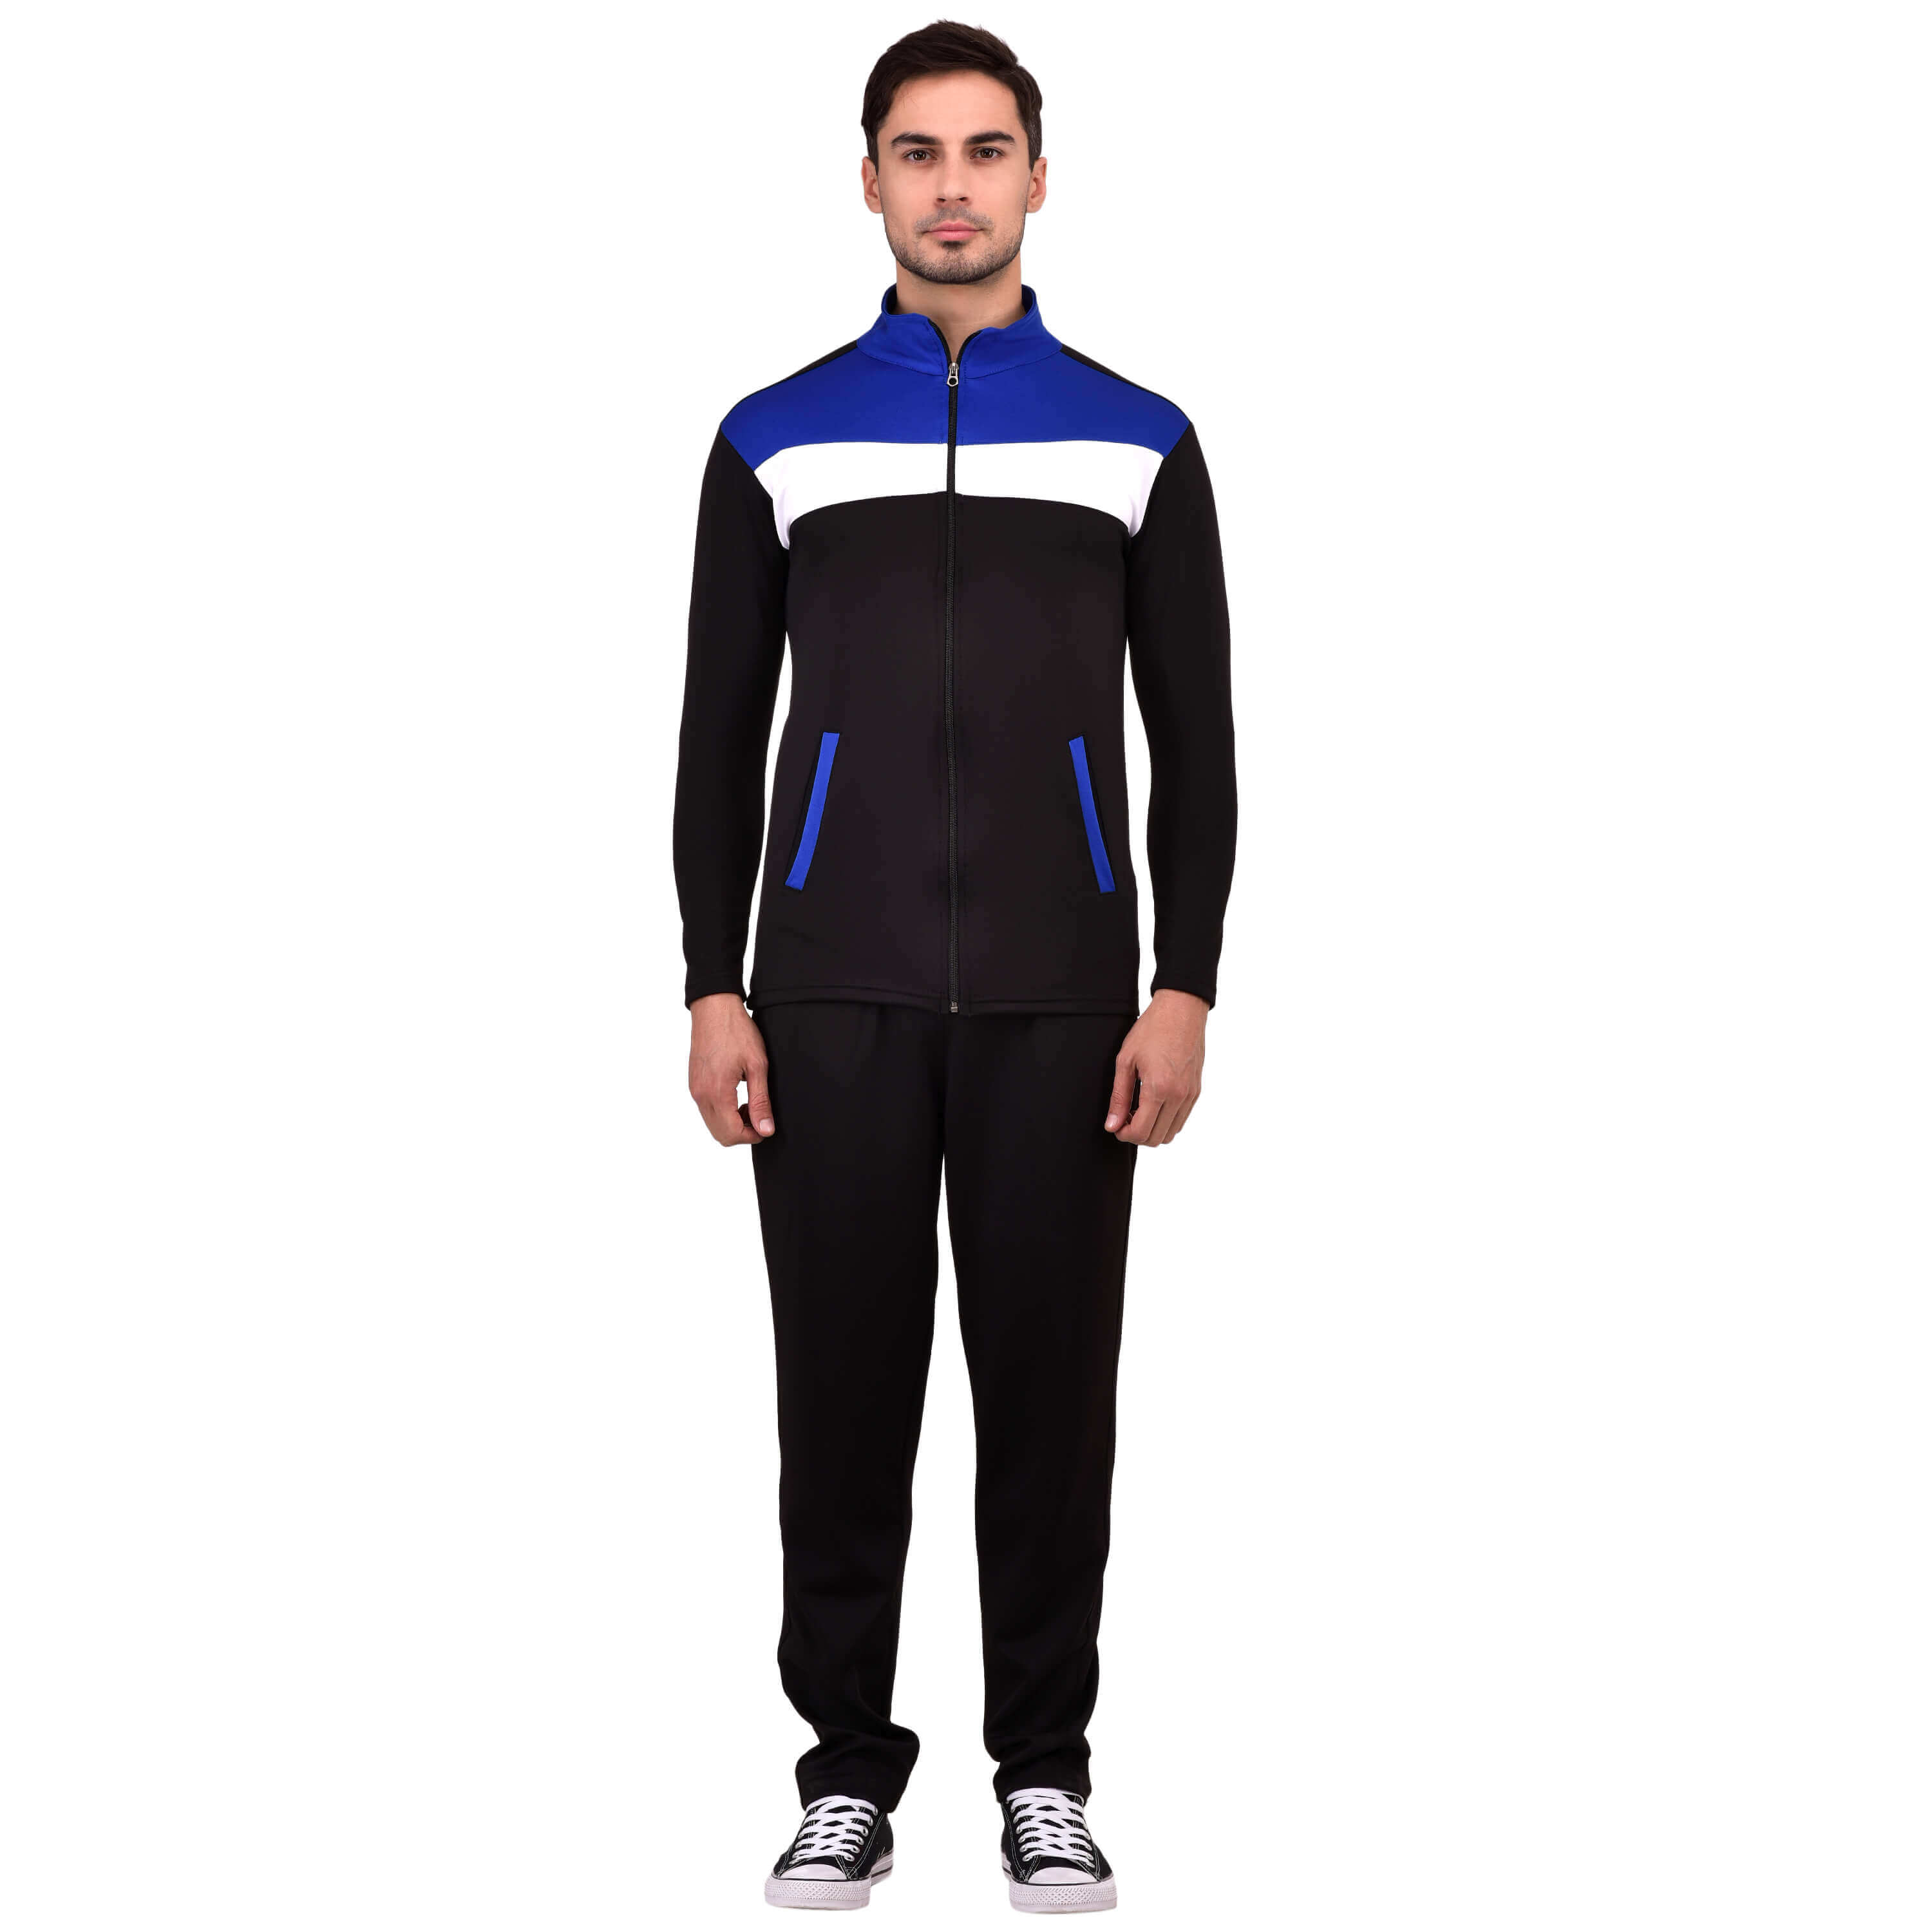 Black Tracksuit Manufacturers in Thiruvananthapuram